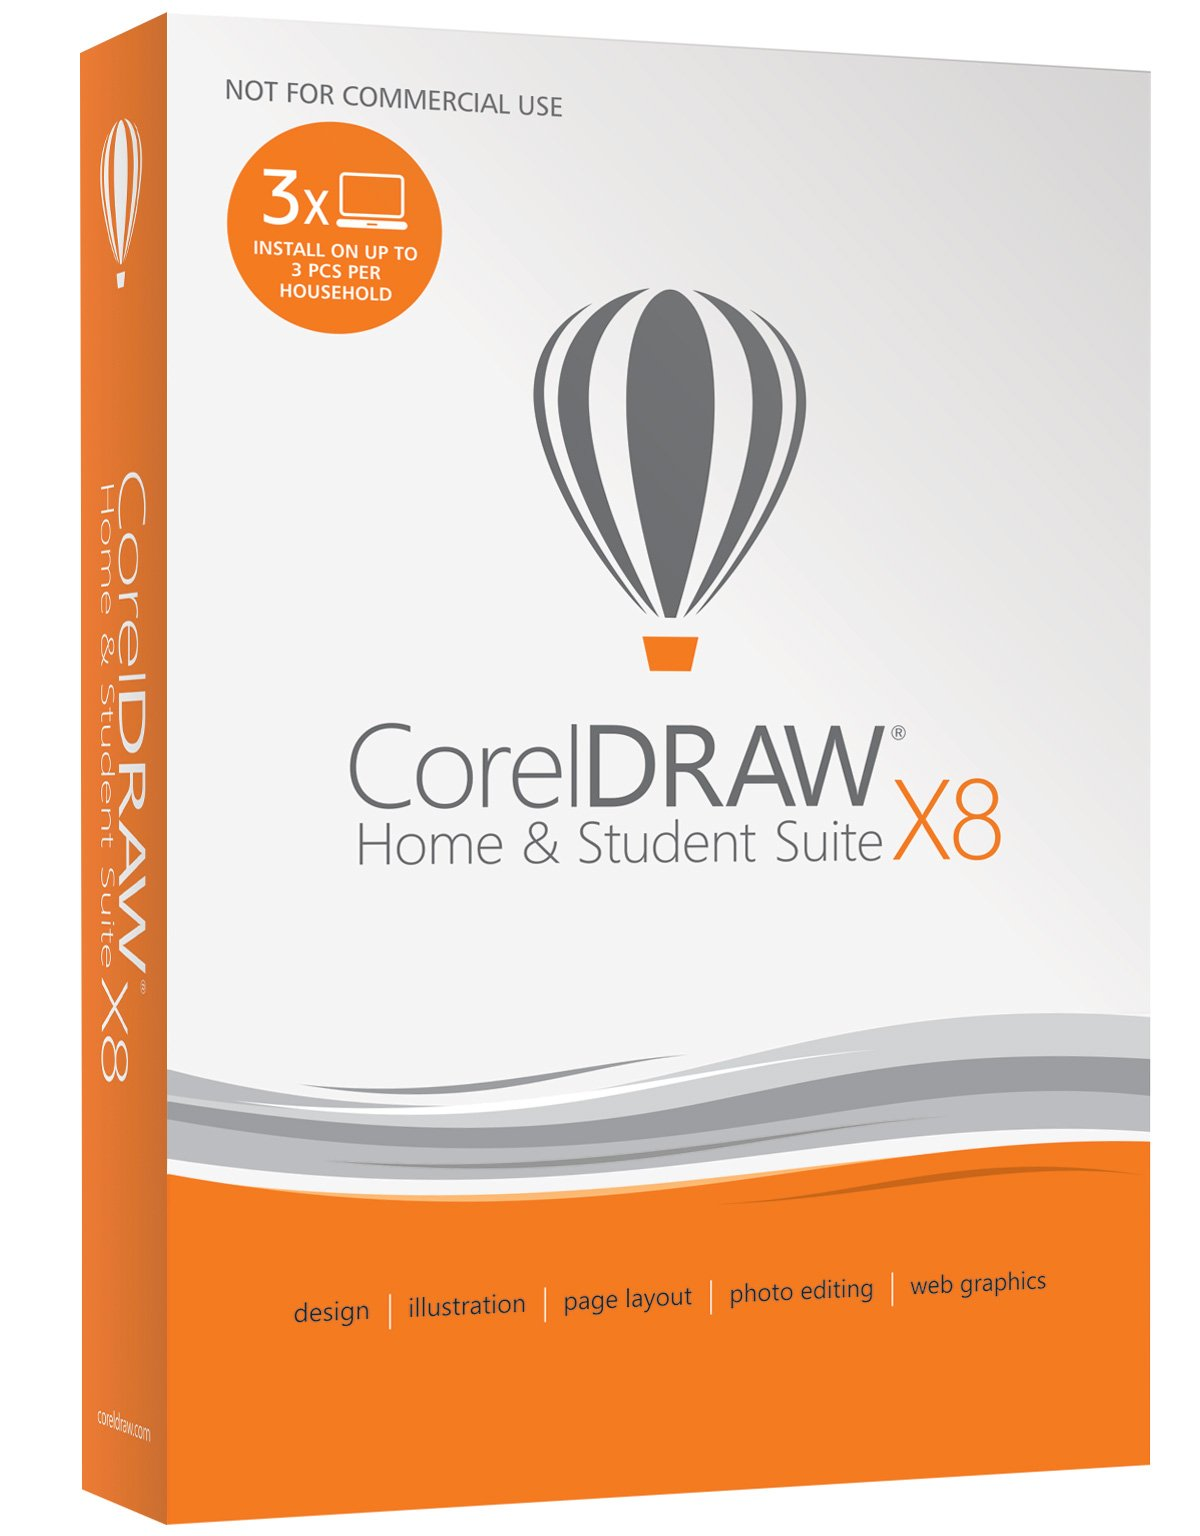 CorelDRAW Home & Student Suite X8 for PC (Old Version) by Corel